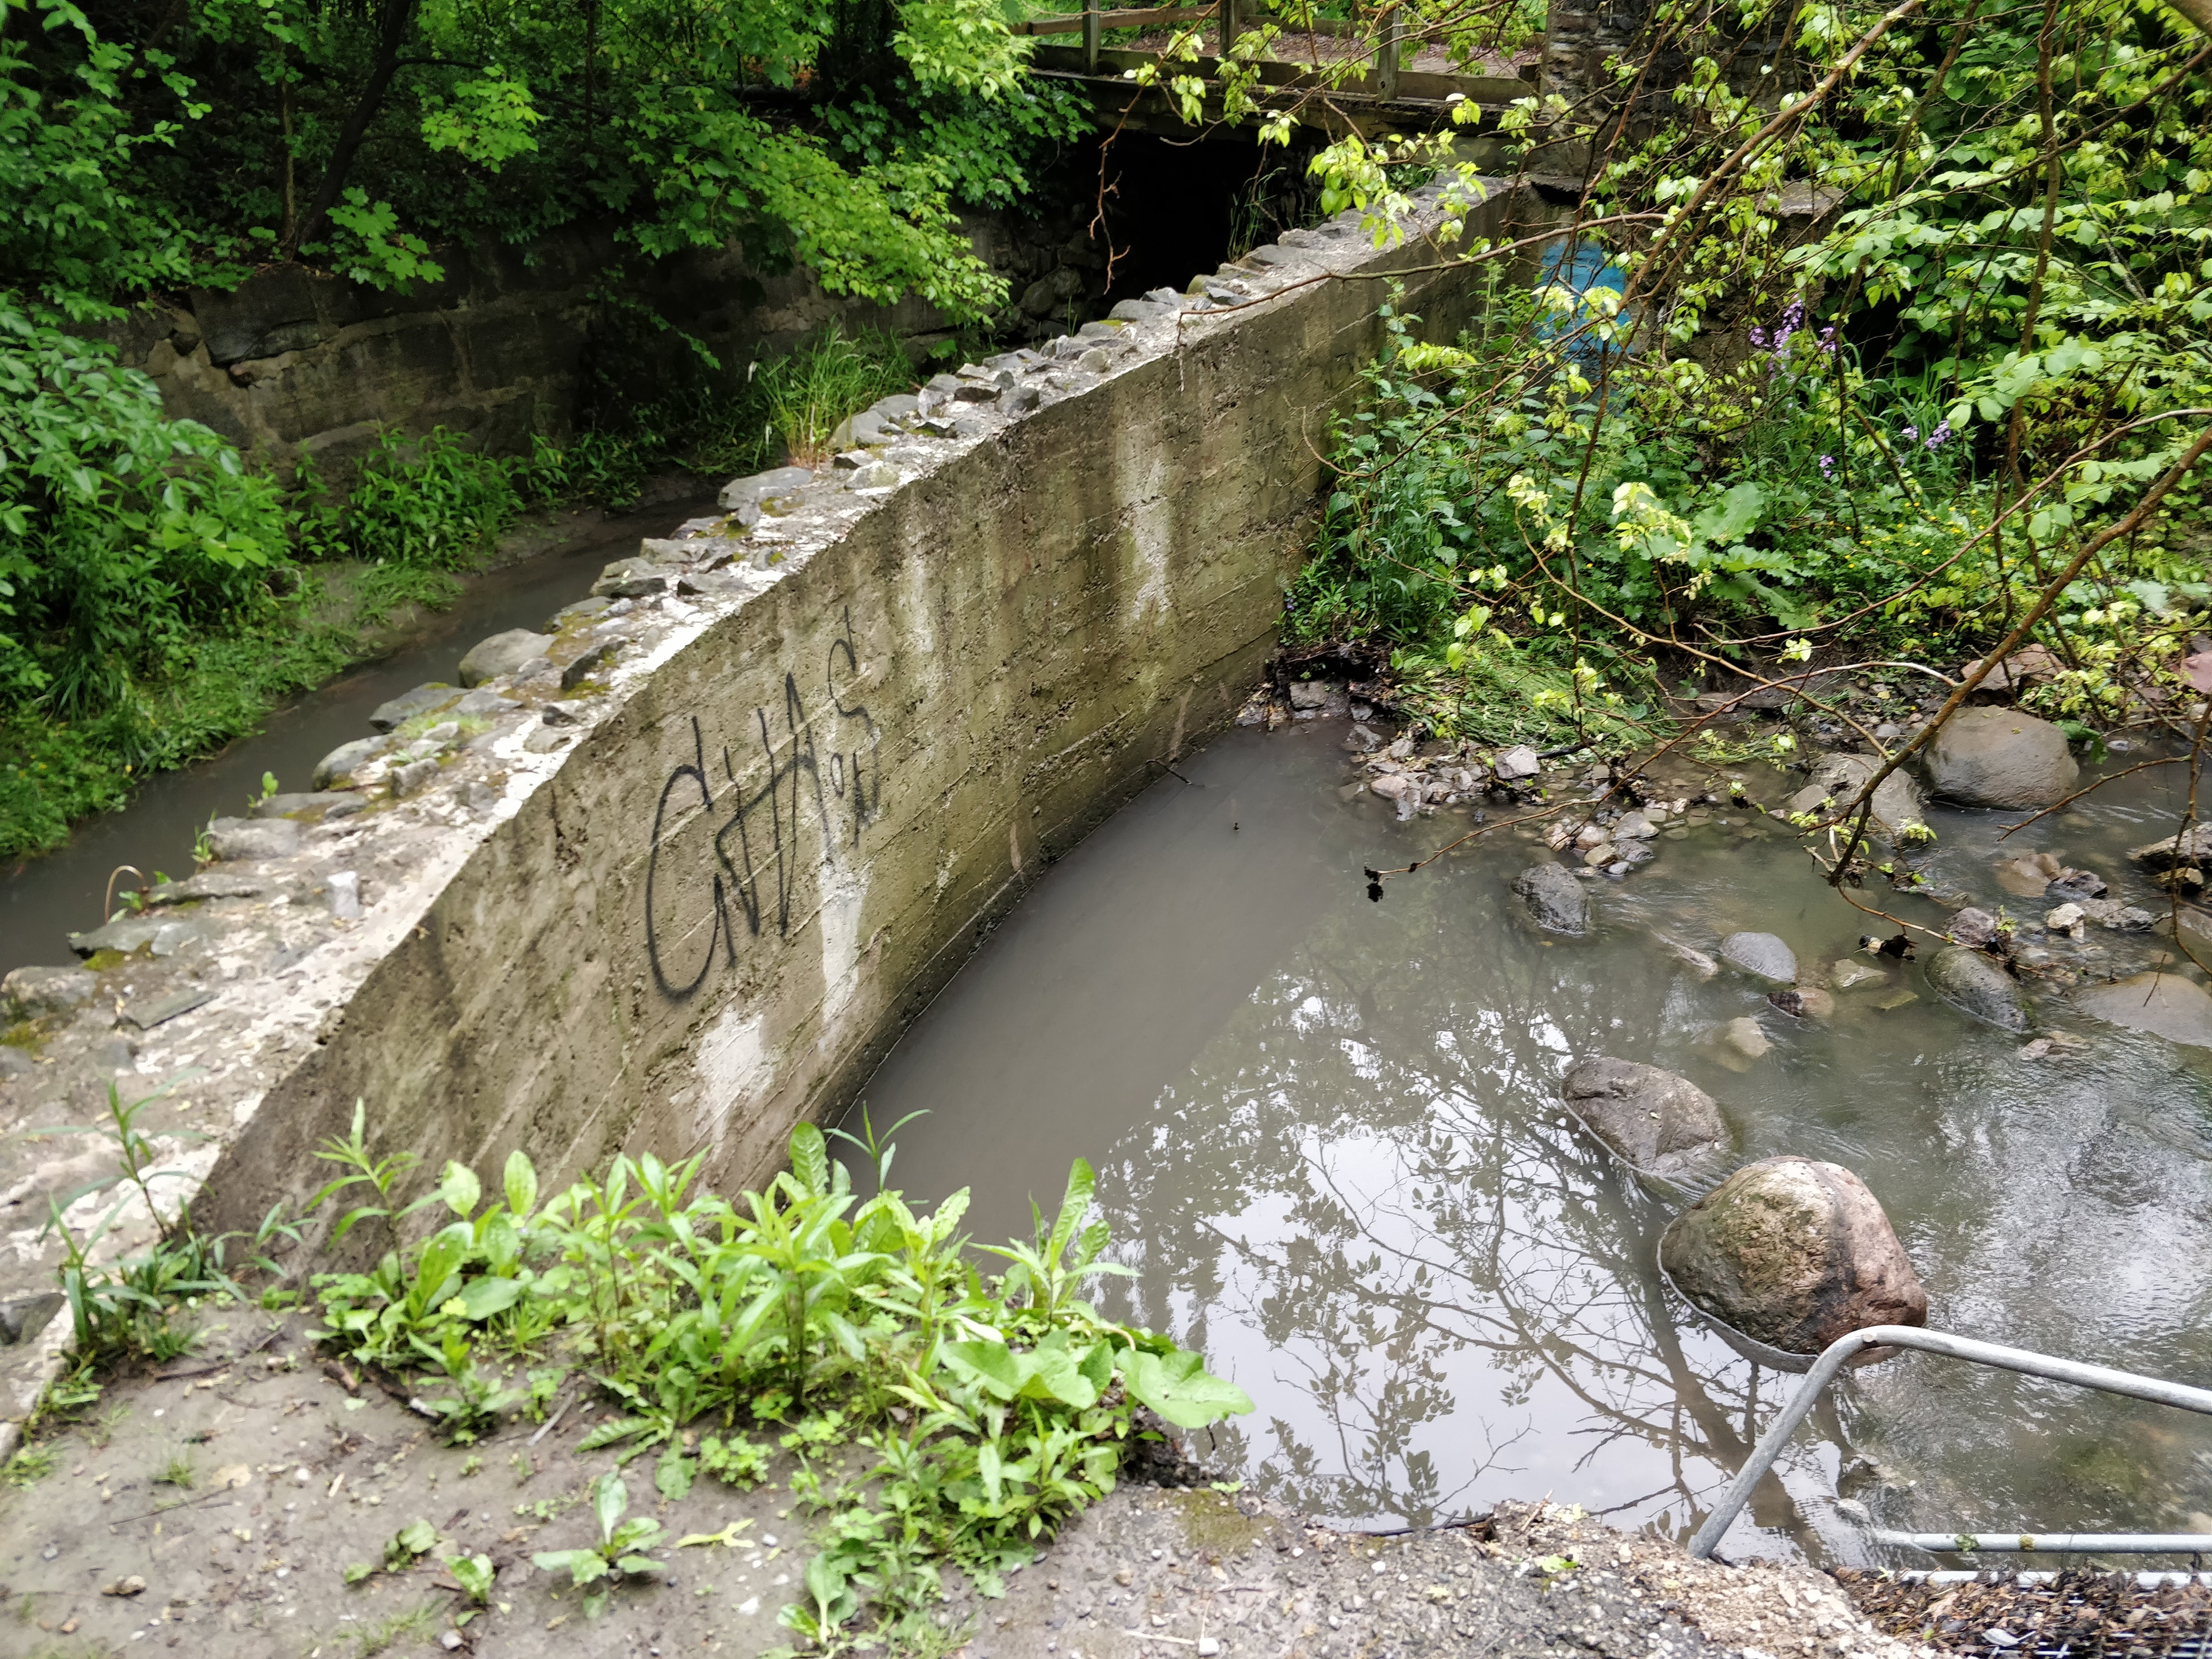 An exposed stone and mortar retaining wall located along Yellow Creek below Summerhill Gardens. Source: TRCA, 2019